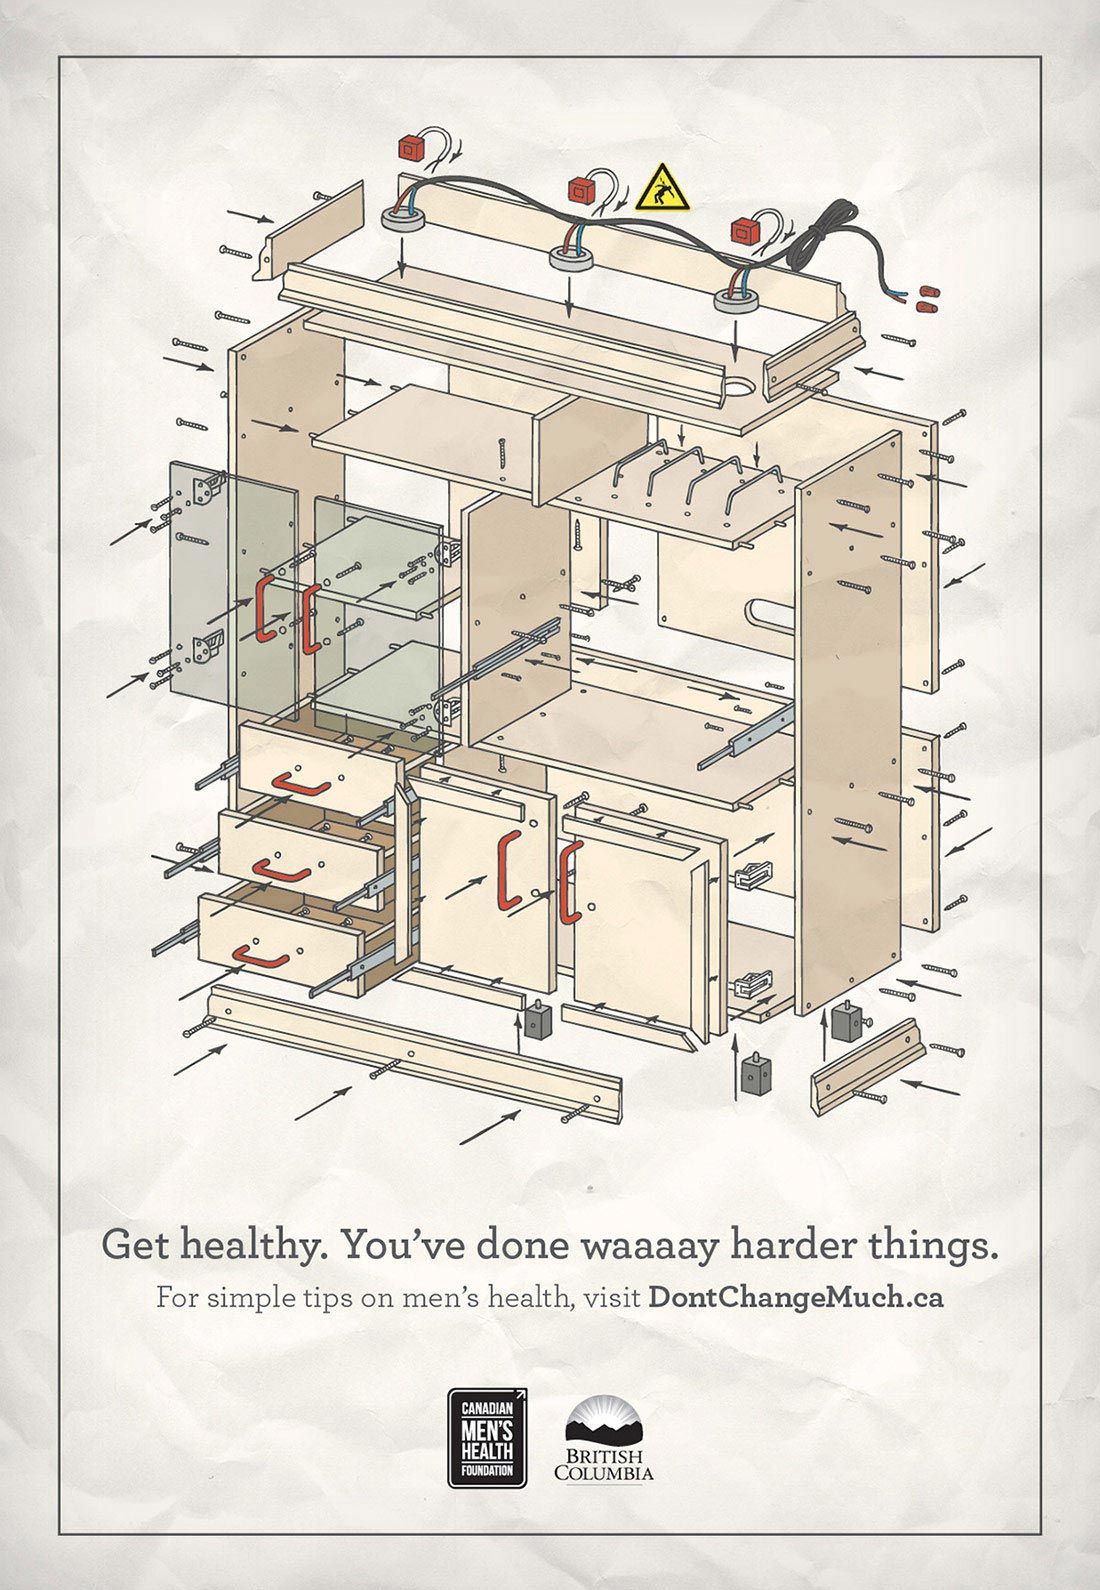 Don't Change Much Shelving Unit Print Ad